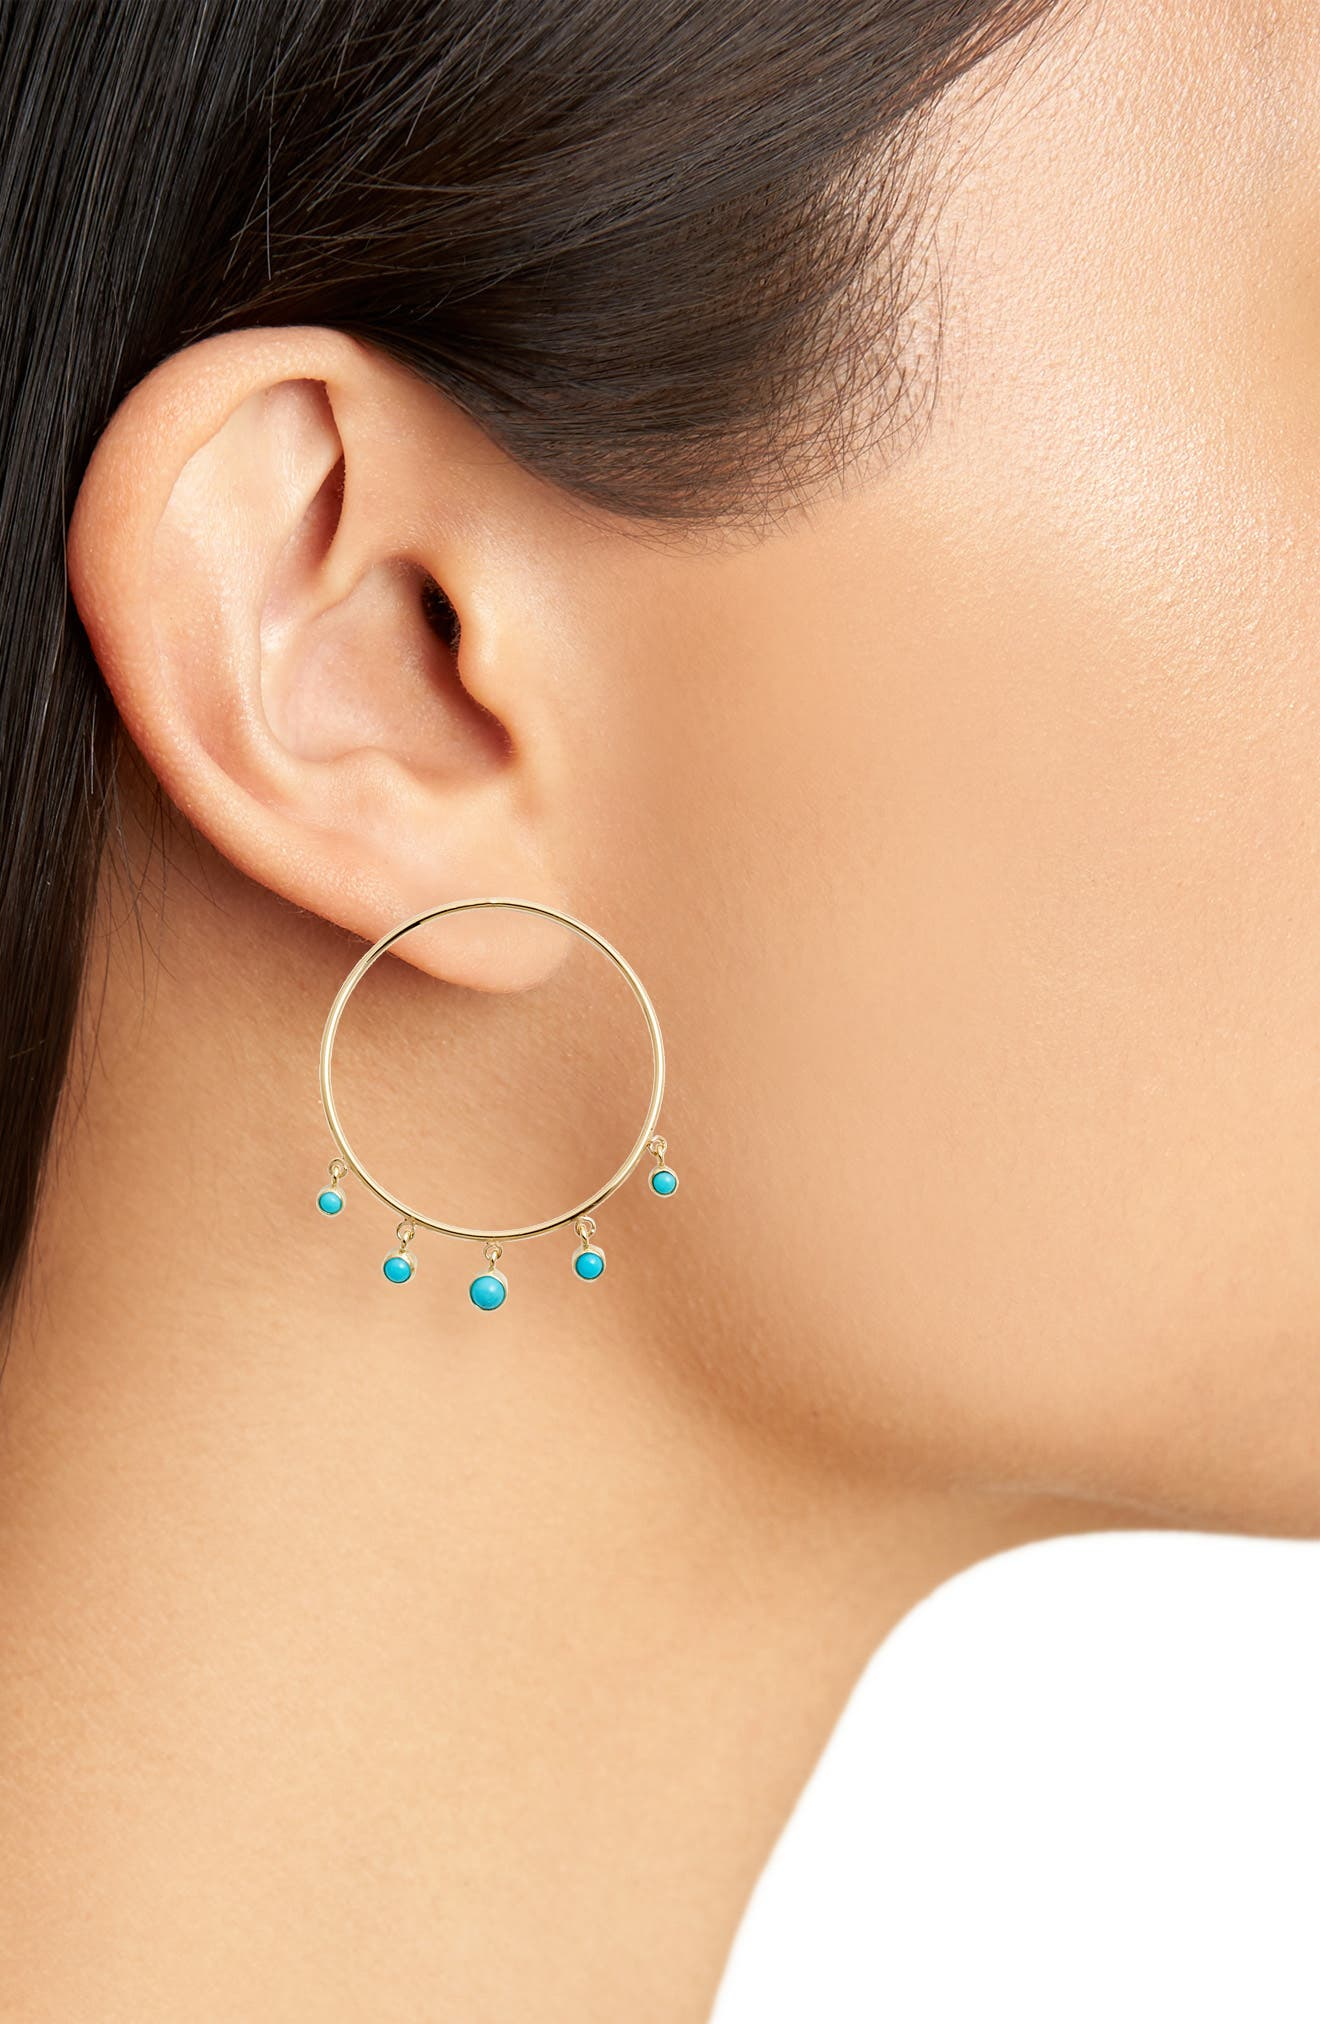 Zoe Chicco Dangling Turquoise Hoop Earrings,                             Alternate thumbnail 2, color,                             Yellow Gold